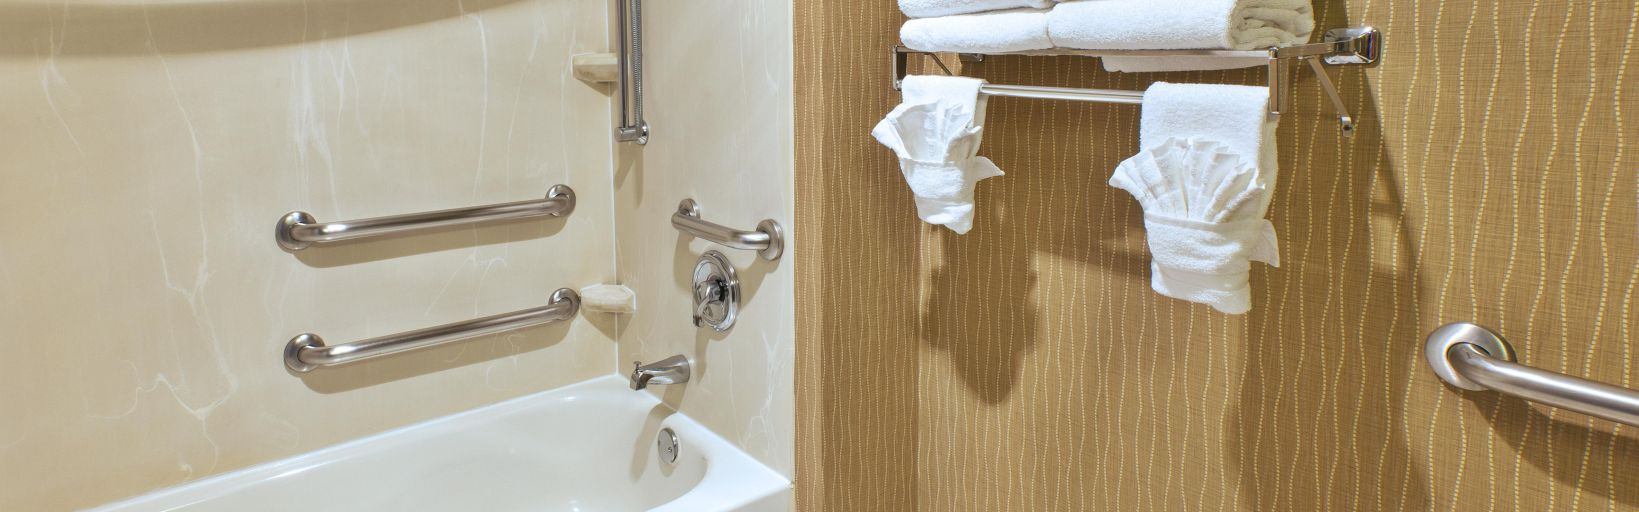 Holiday Inn Hotel Suites Bolingbrook Hotel By Ihg